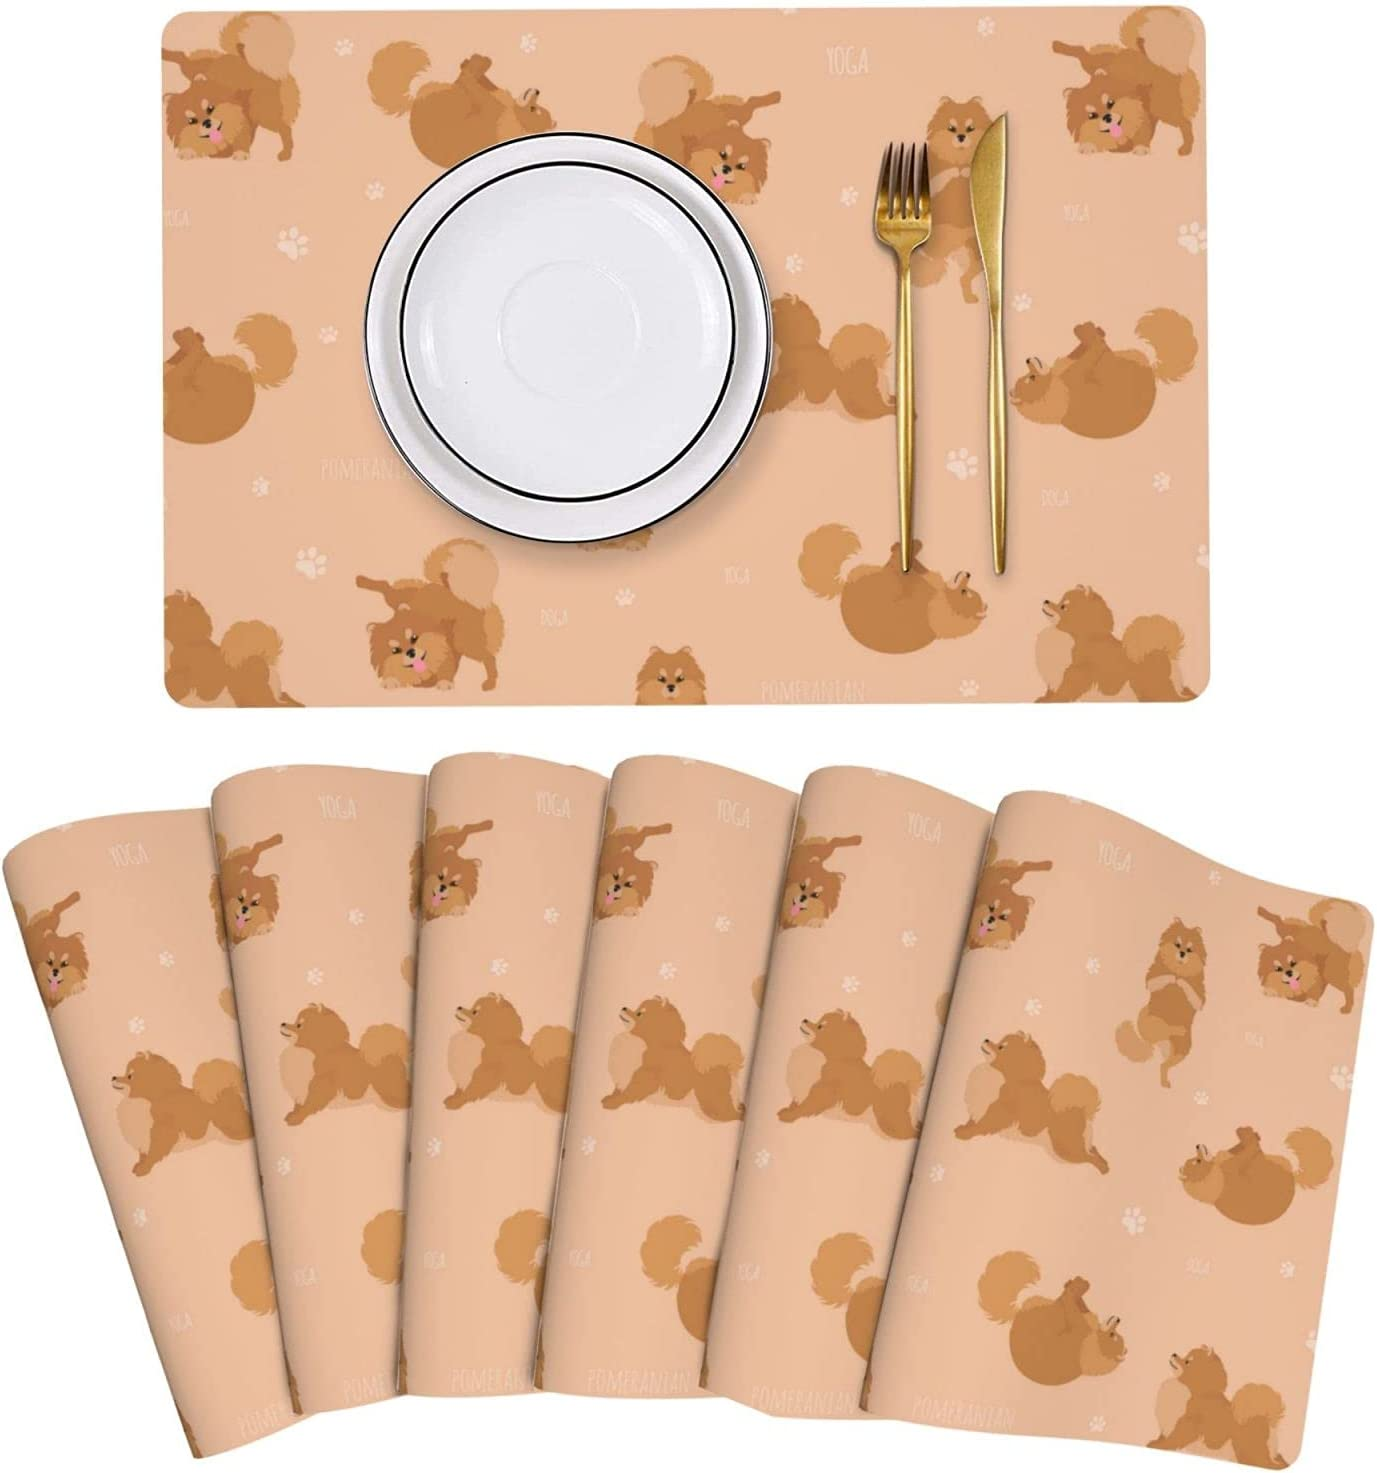 Pomeranian Yoga Poses Placemat Leather Table Set Manufacturer regenerated product of Mats Easy 6 Selling